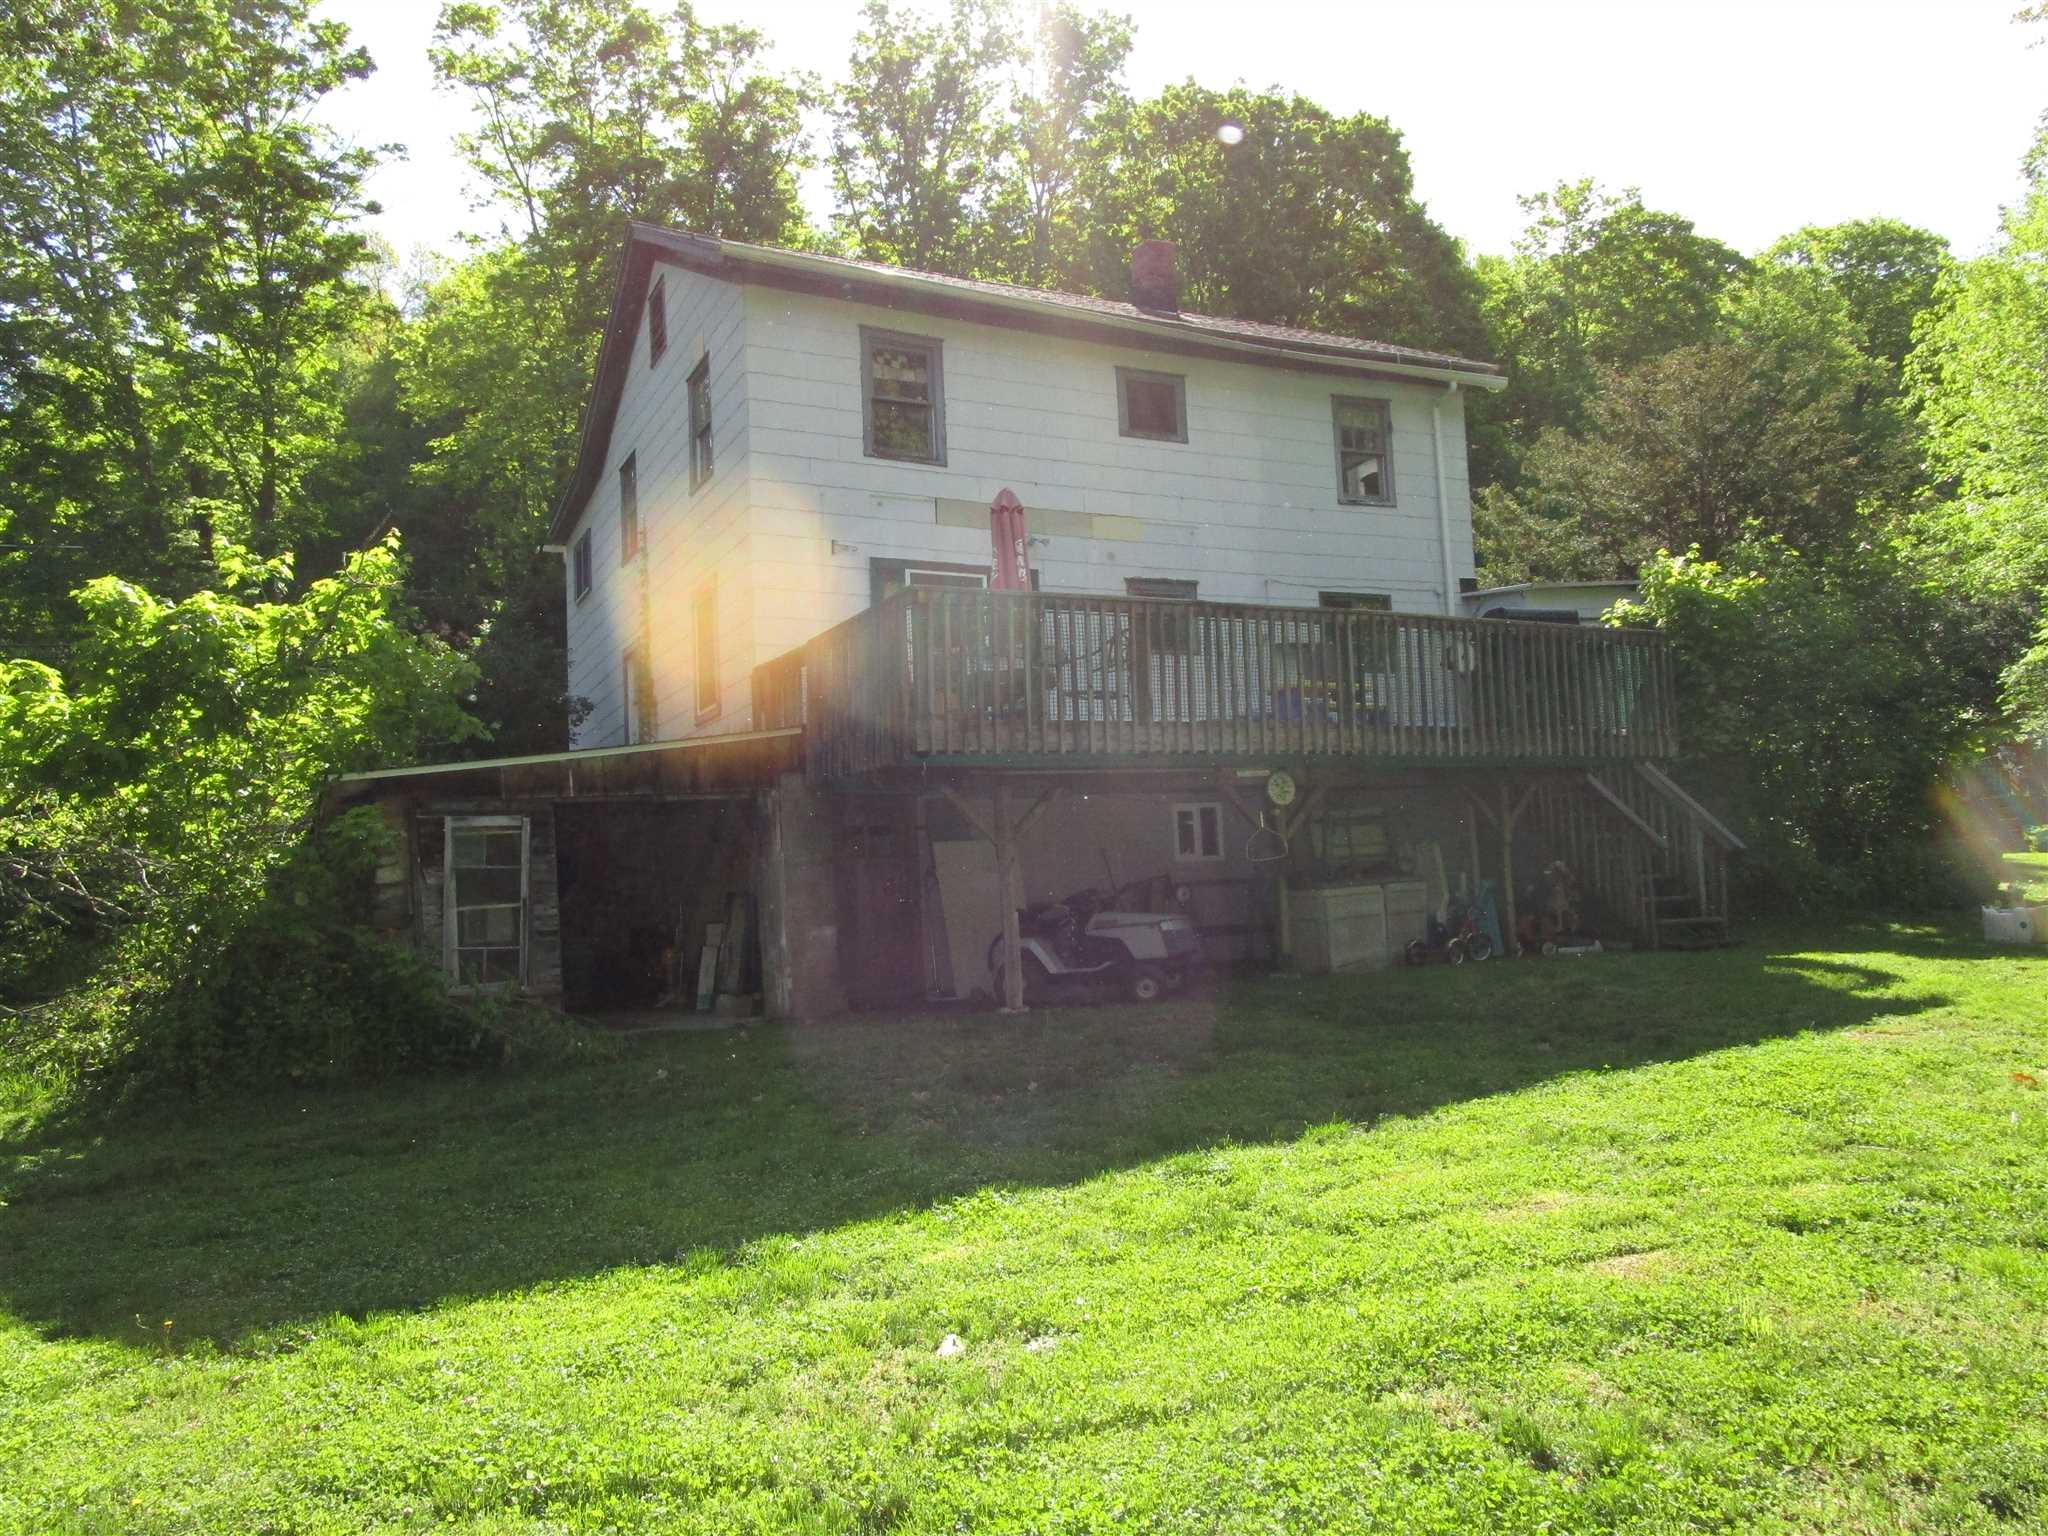 255 OLD ROUTE 55 Beekman, NY 12570 - MLS #: 371190